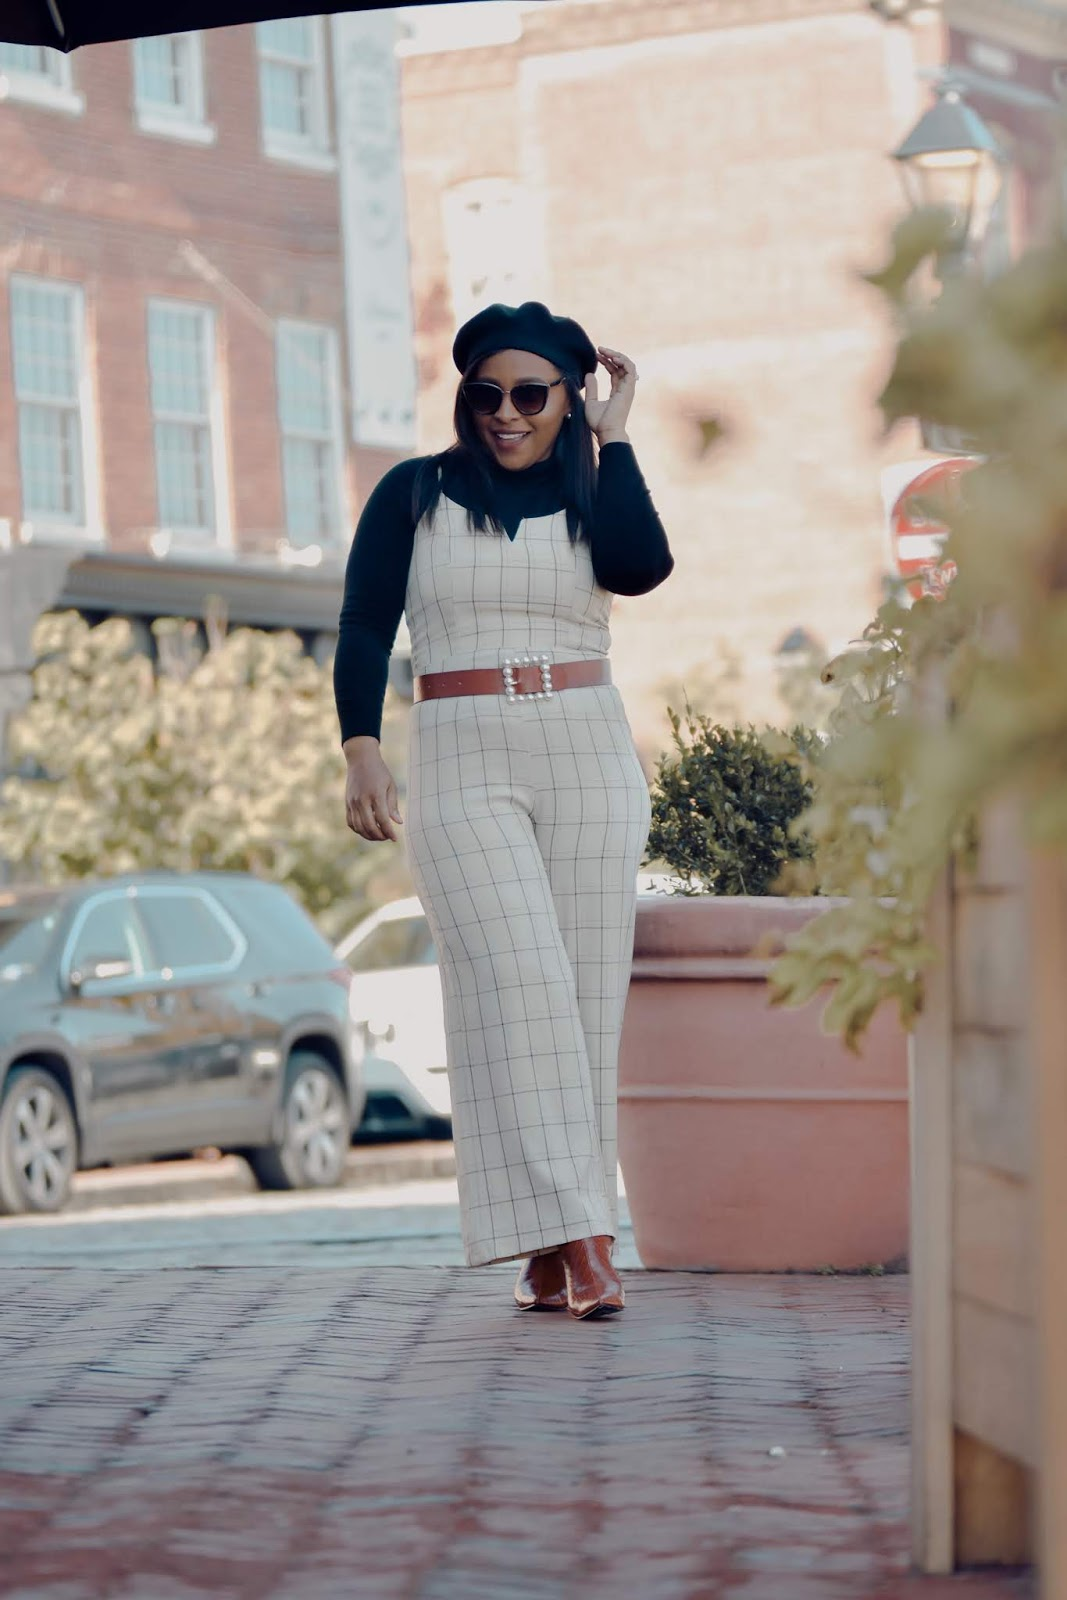 shein, shein clothing reviews, fall outfi ideas, black friday, cyber monday, pattys kloset, chic fall outfits